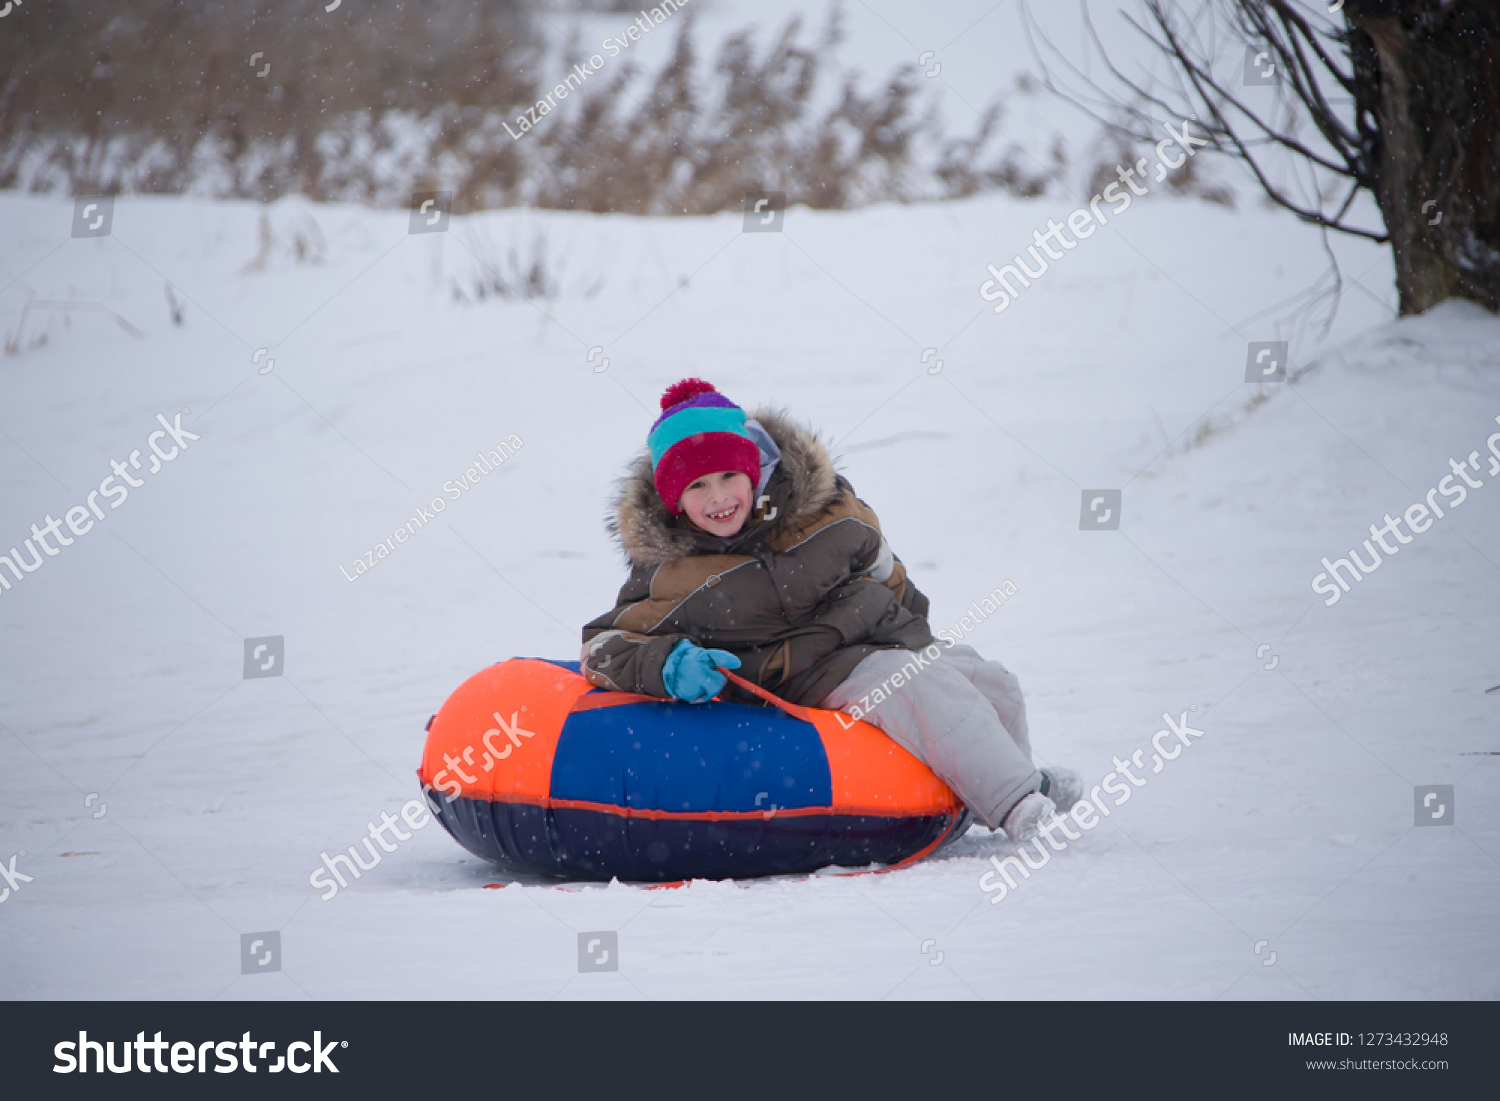 Sleighing Wallpapers Snow Winter Funny Sports Wwwgalleryneedcom